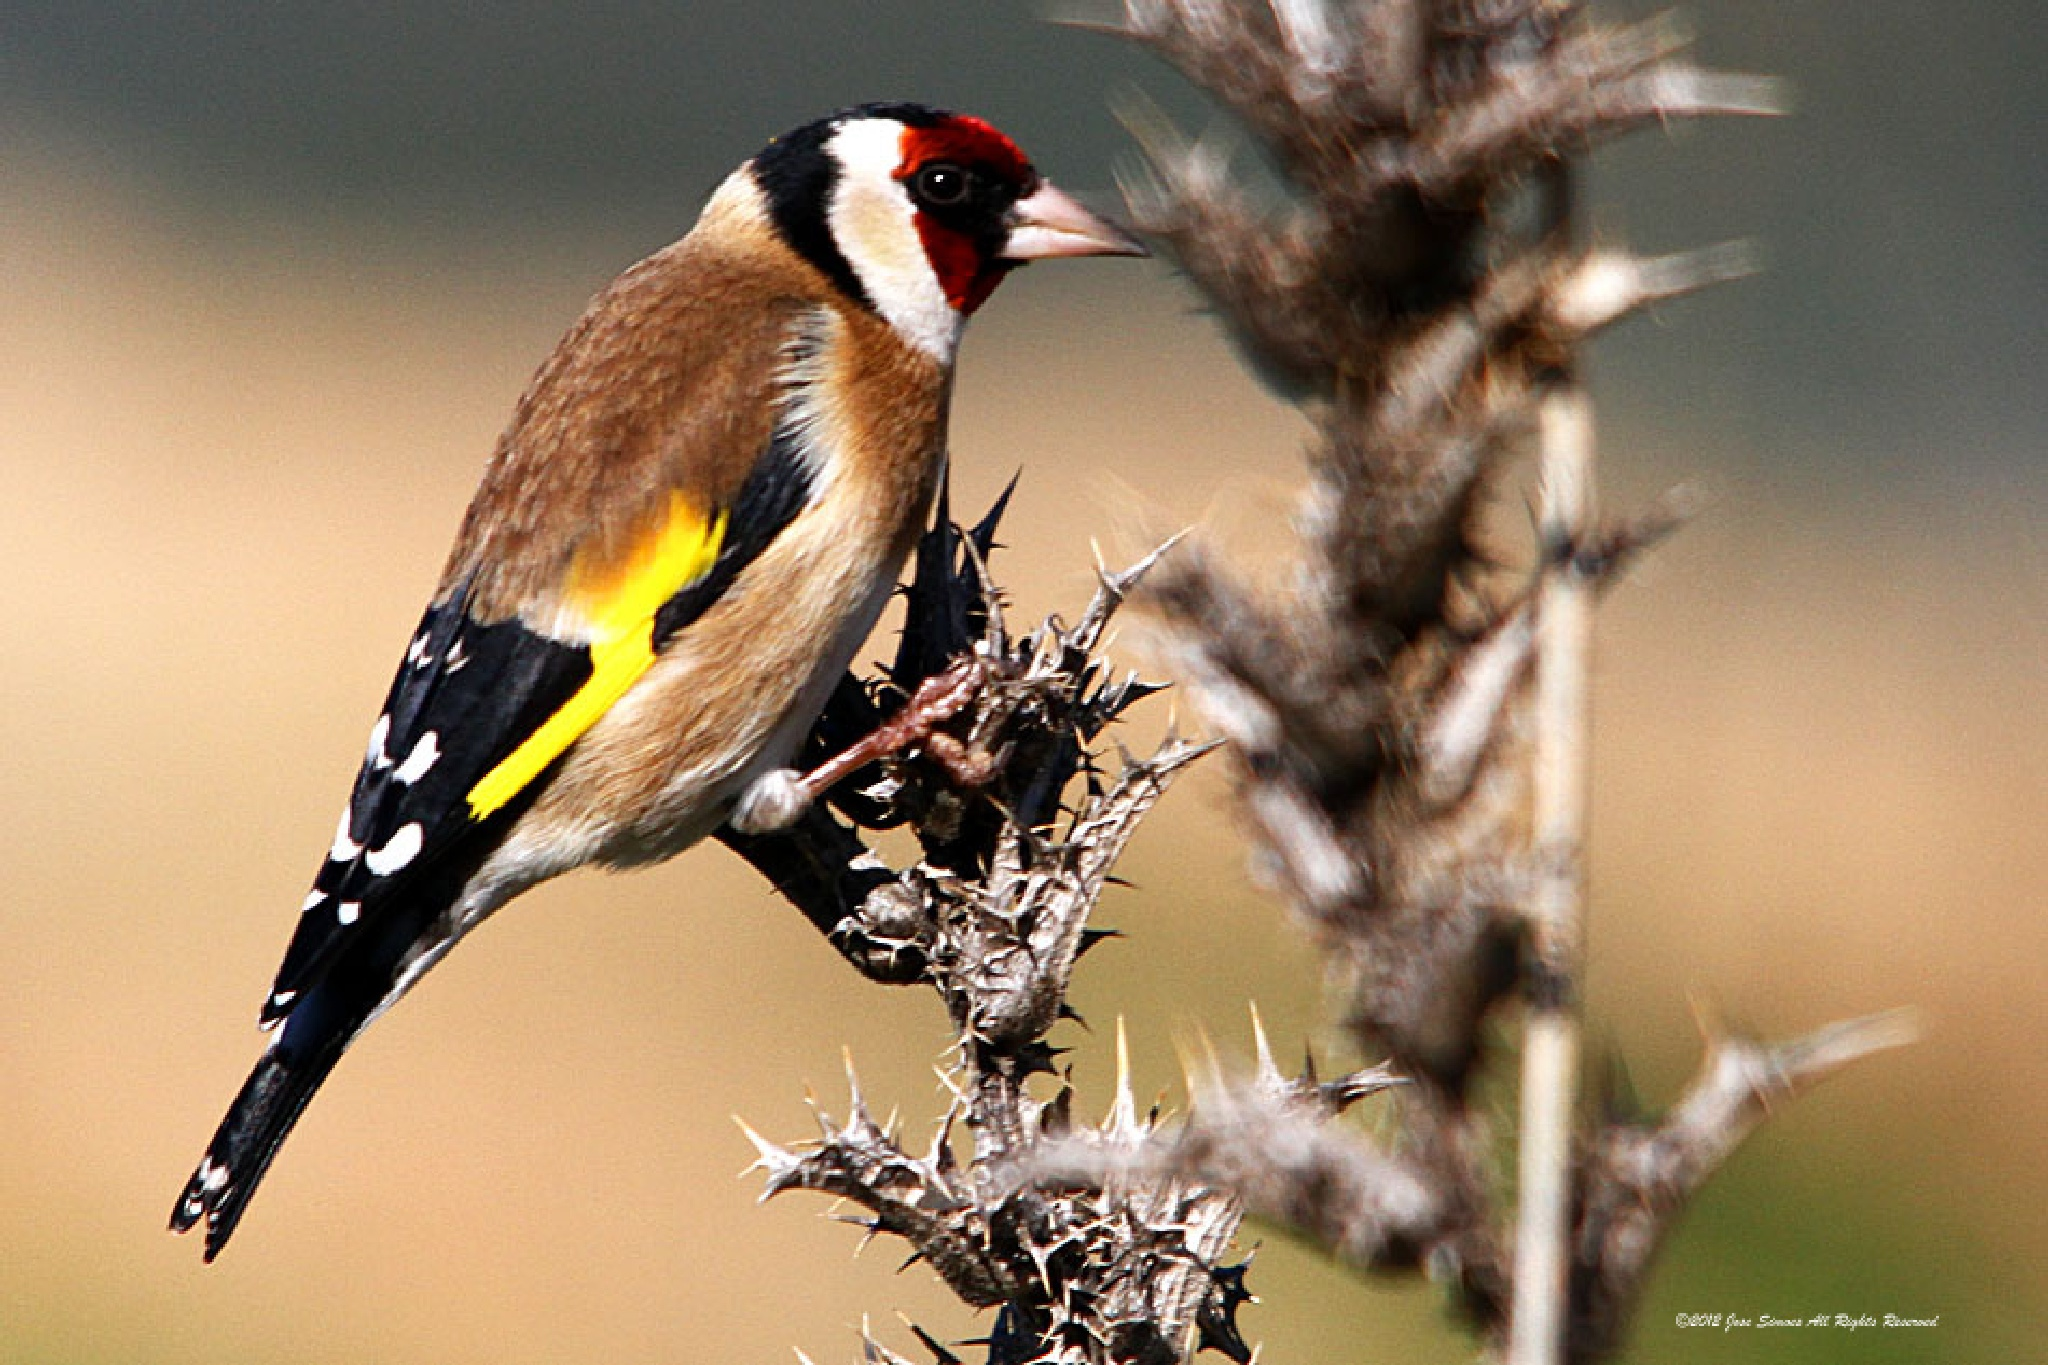 Goldfinch by Jose Simoes